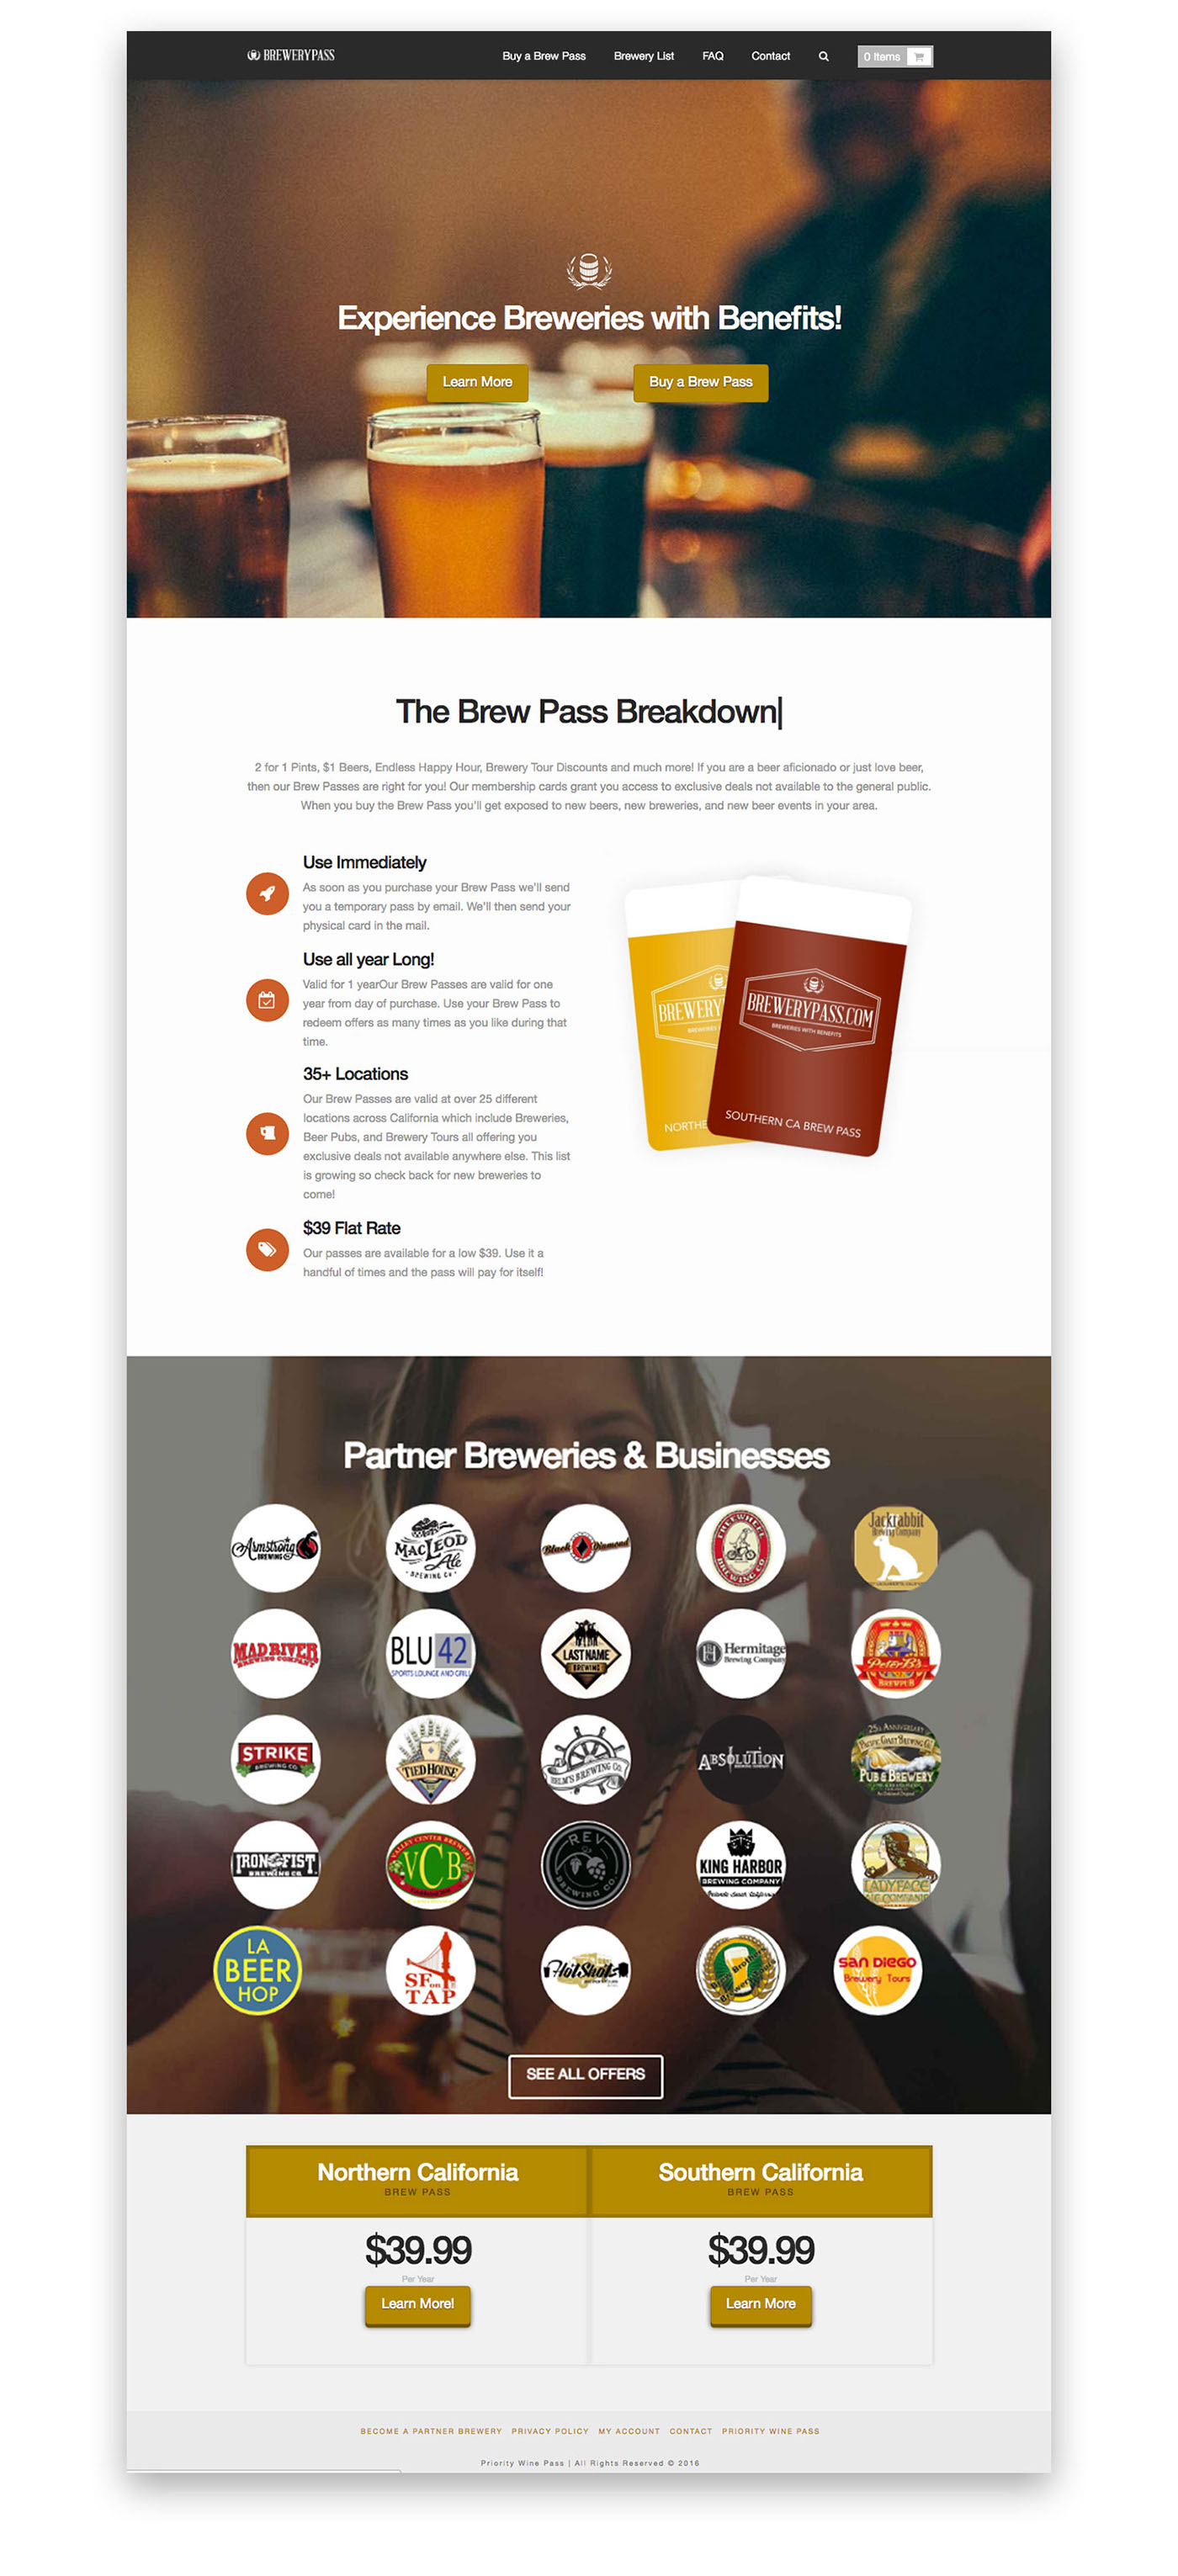 Design of the Brewery Pass Homepage